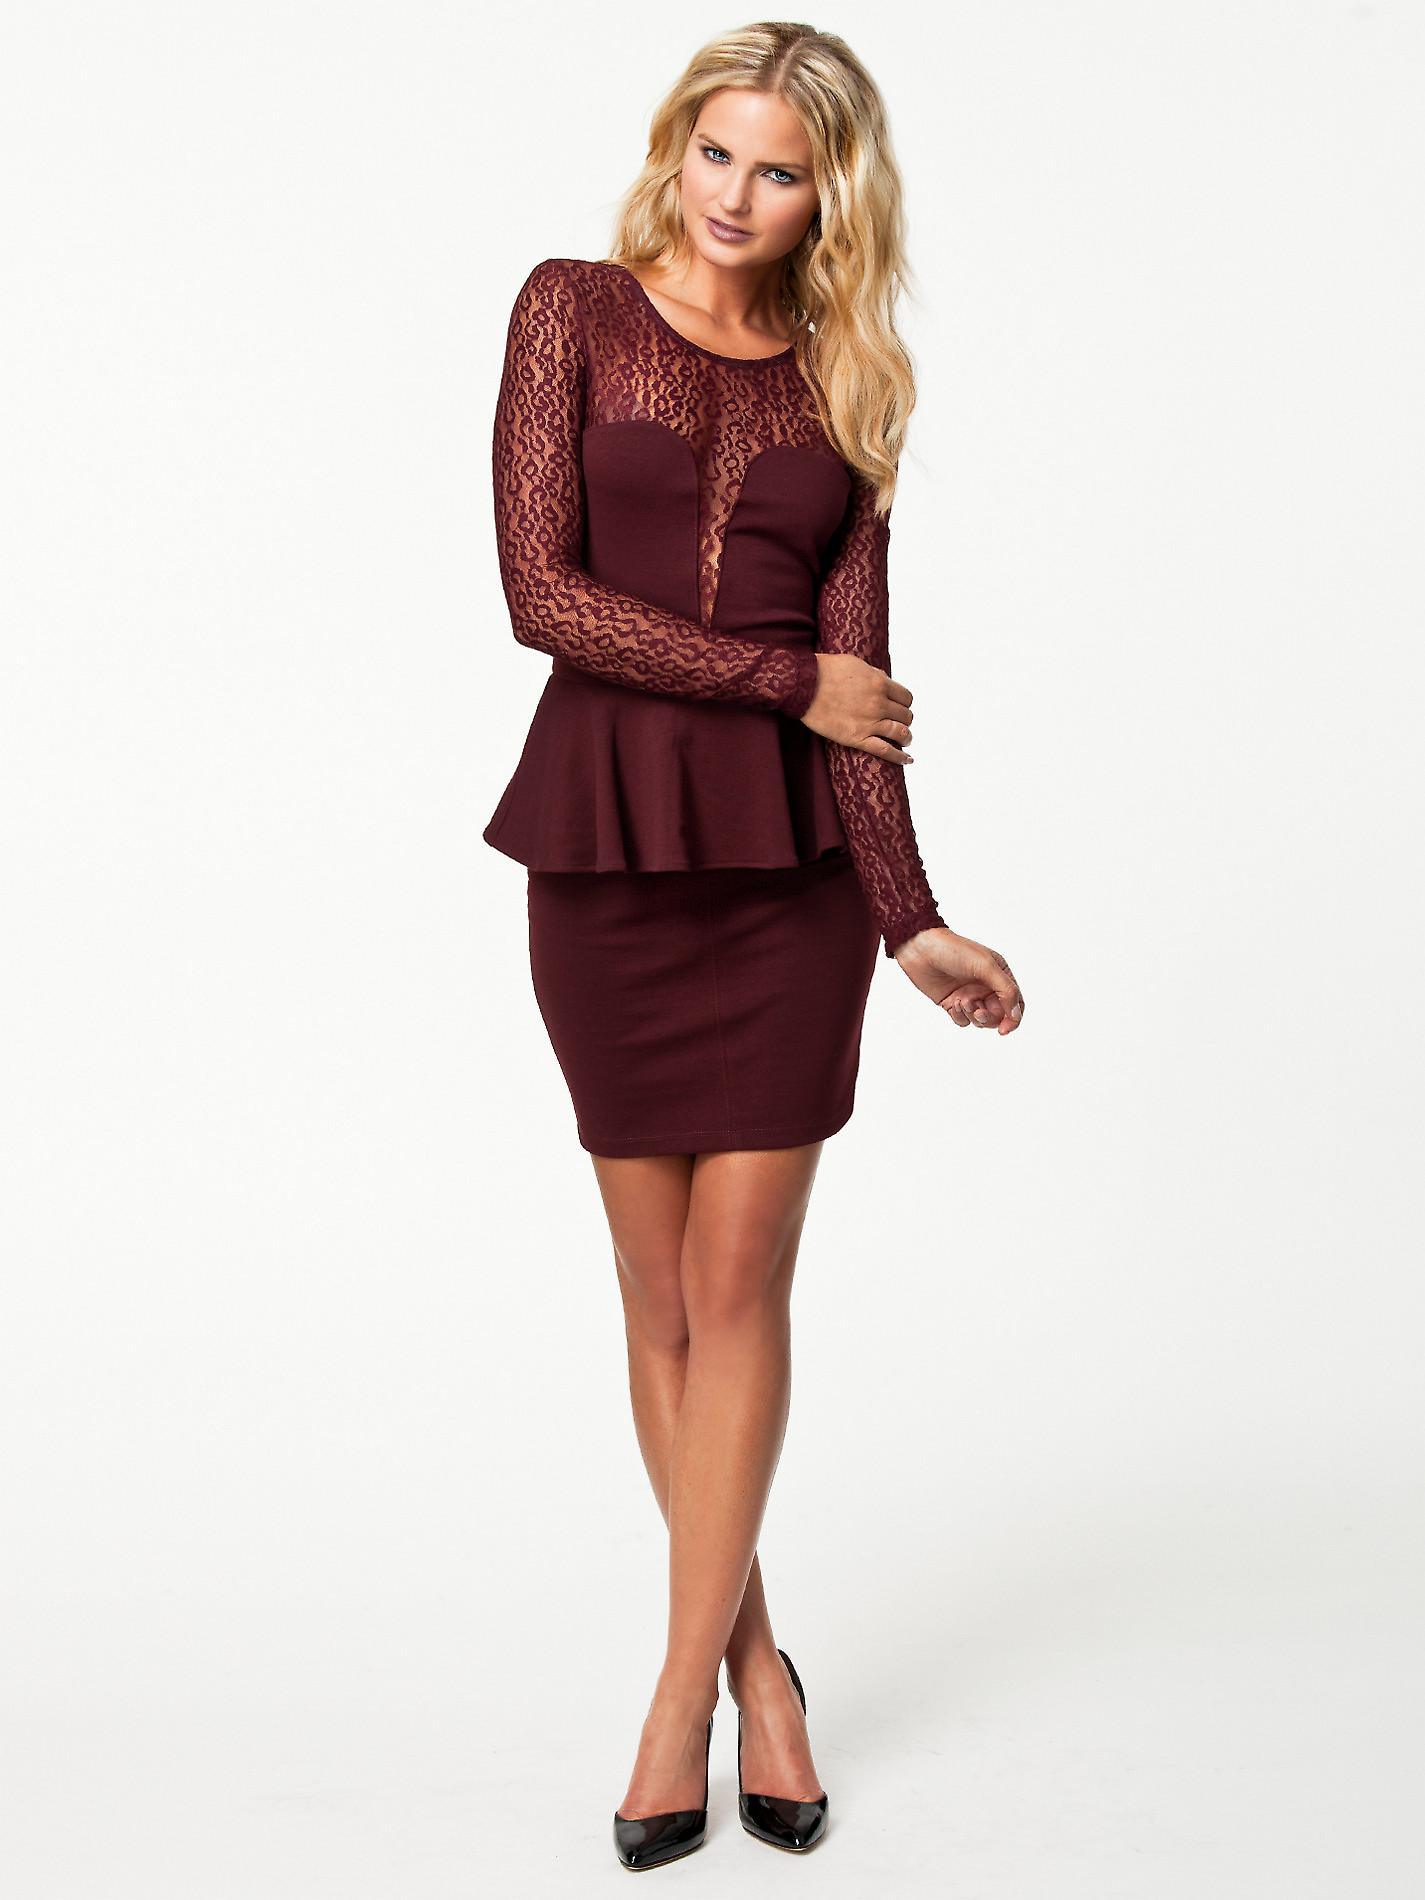 Waooh - Fashion - short dress in lace